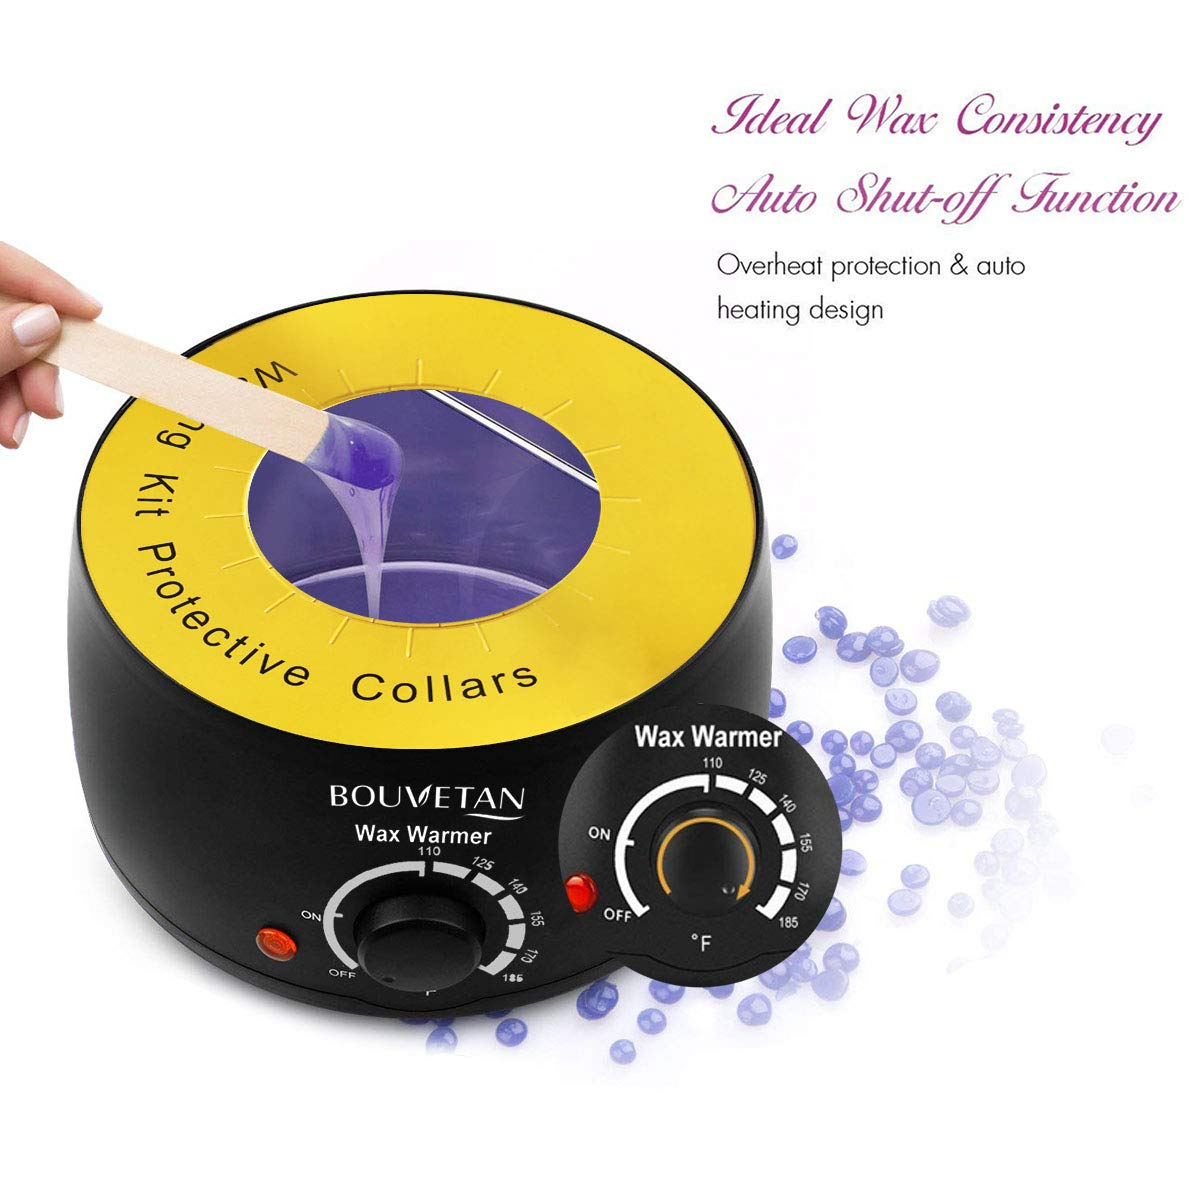 Wax Warmer, Professional Hair Removal Waxing Kit + 4 Scents Hard Wax Beans(3.5oz/Pack) + 20 Wax Applicator Sticks + 5 Protective Collars + 5 Small Bowls (Professional-grade Home Wax Kit) (15) (T01) by Keethem (Image #2)